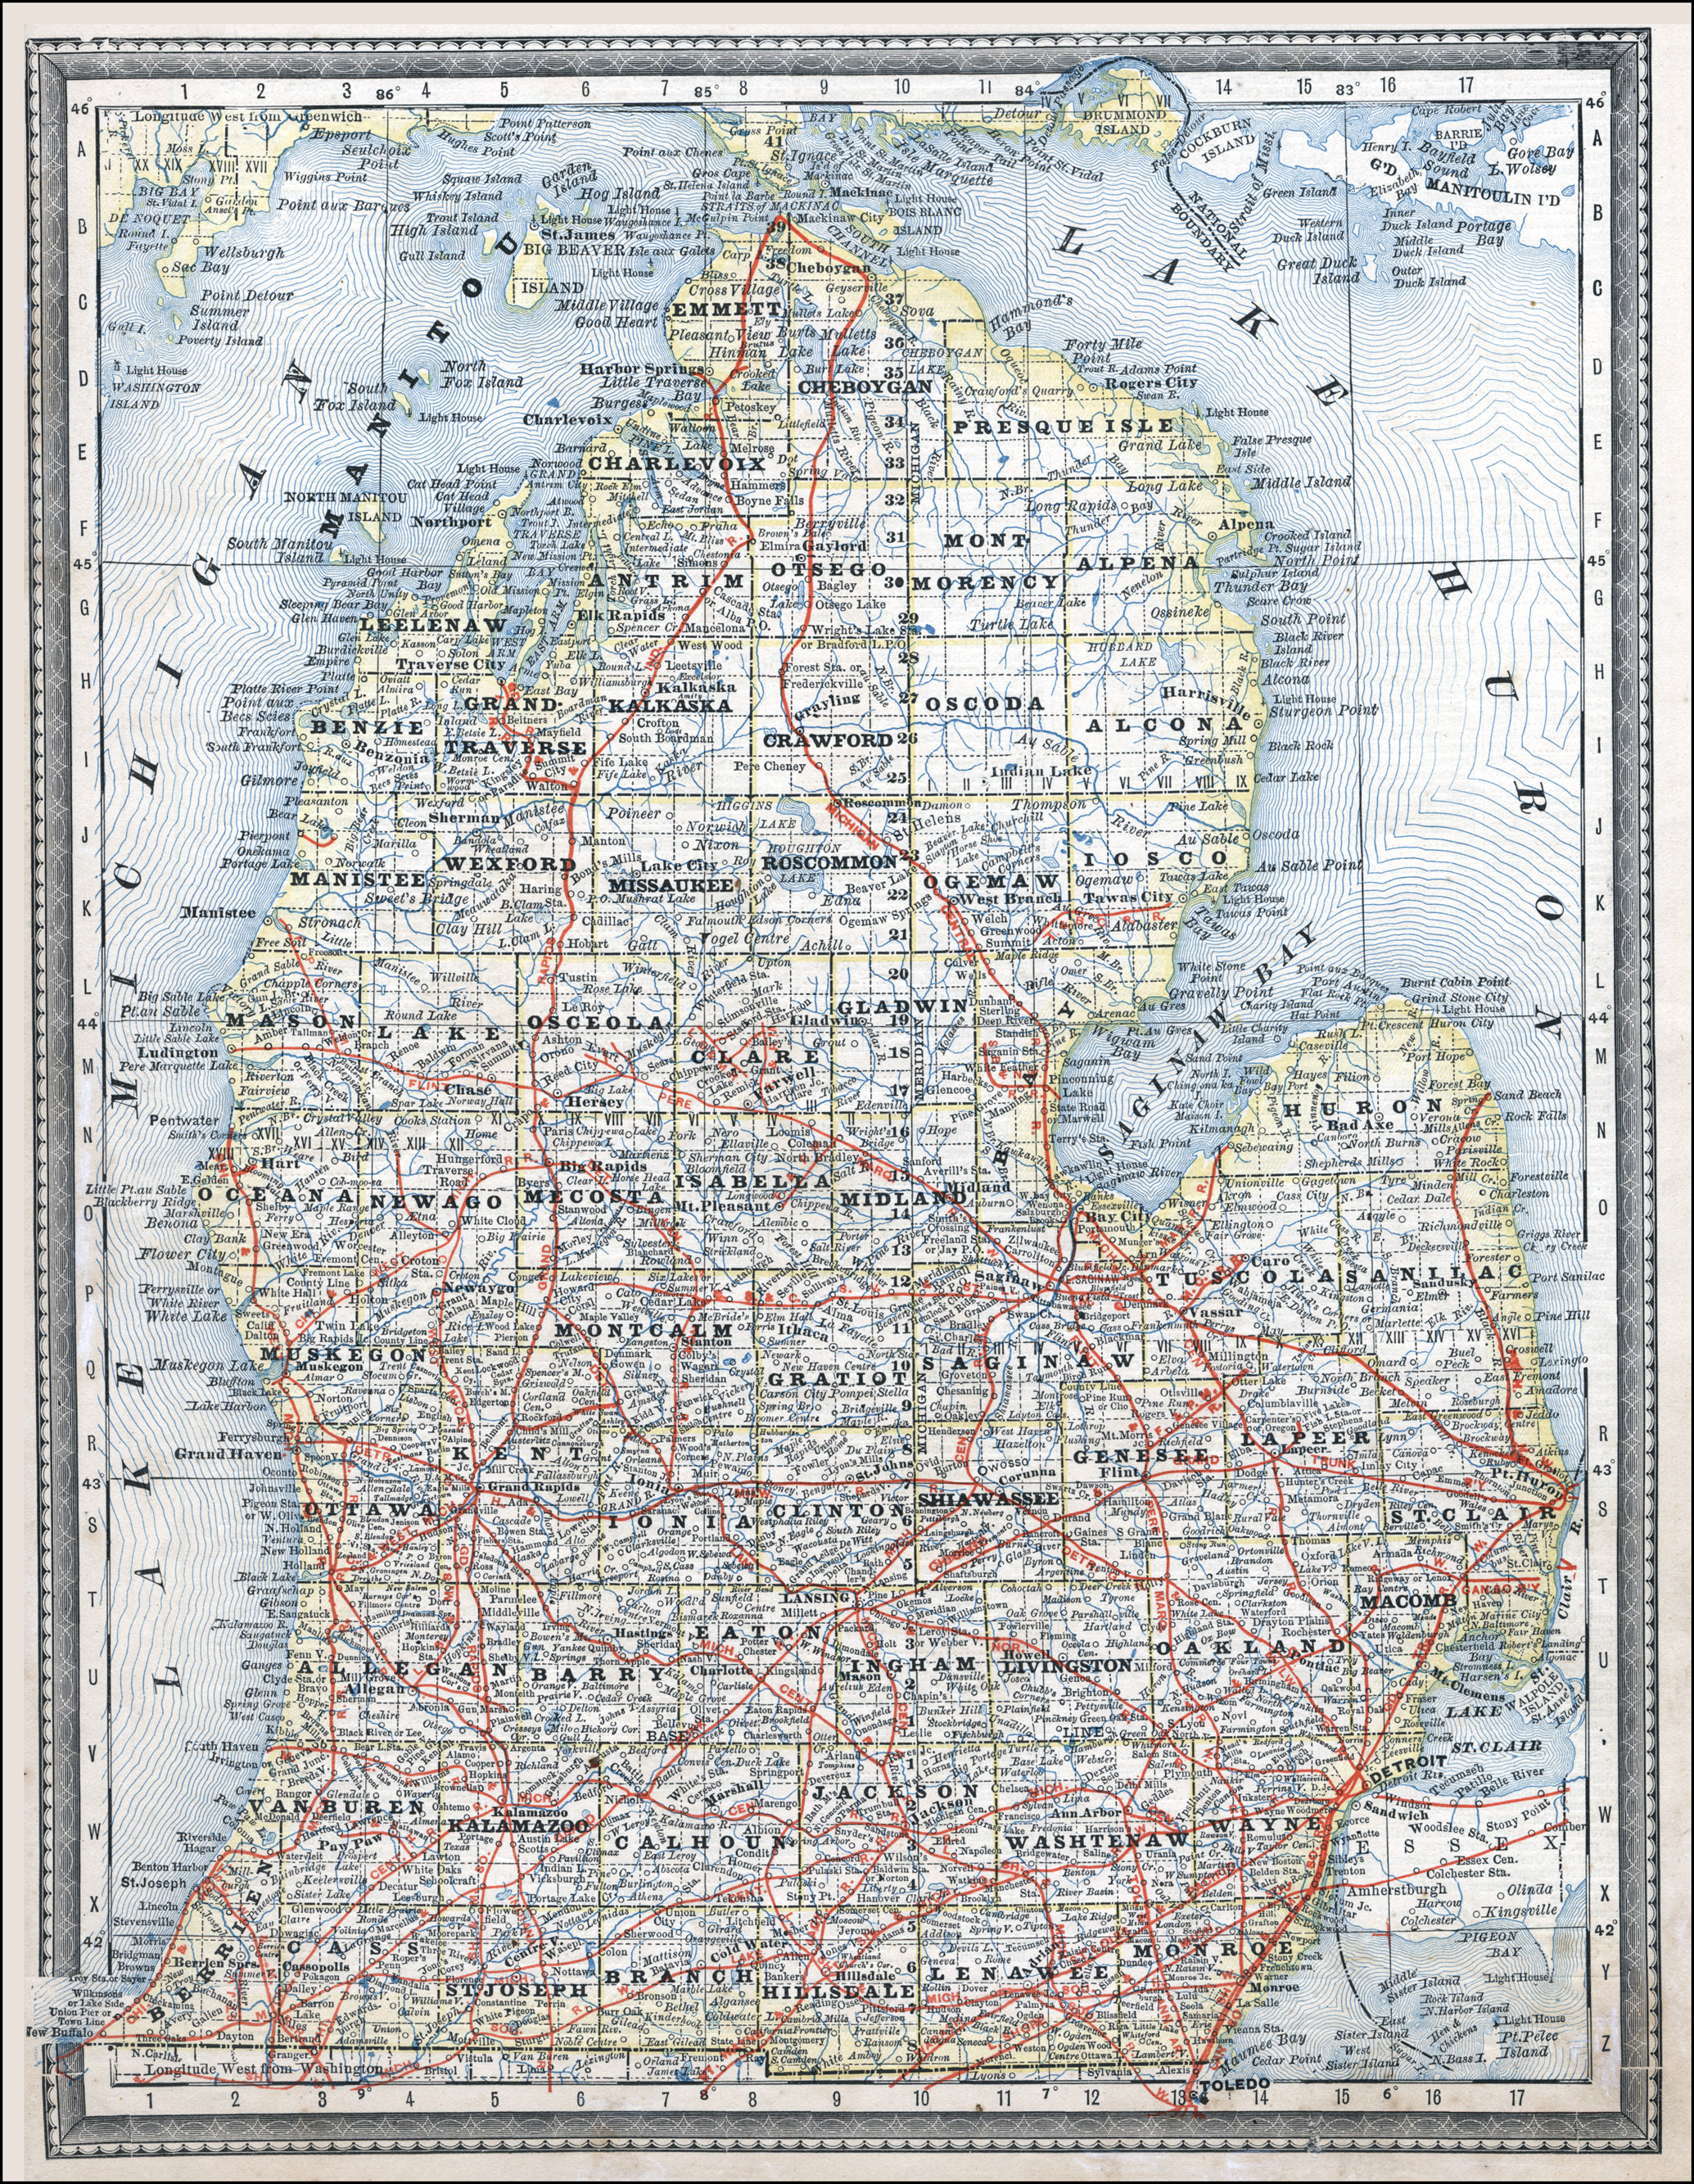 Part State Of Michigan Michigan Road Maps Exhibts MSU Libraries - Rand mcnally online maps